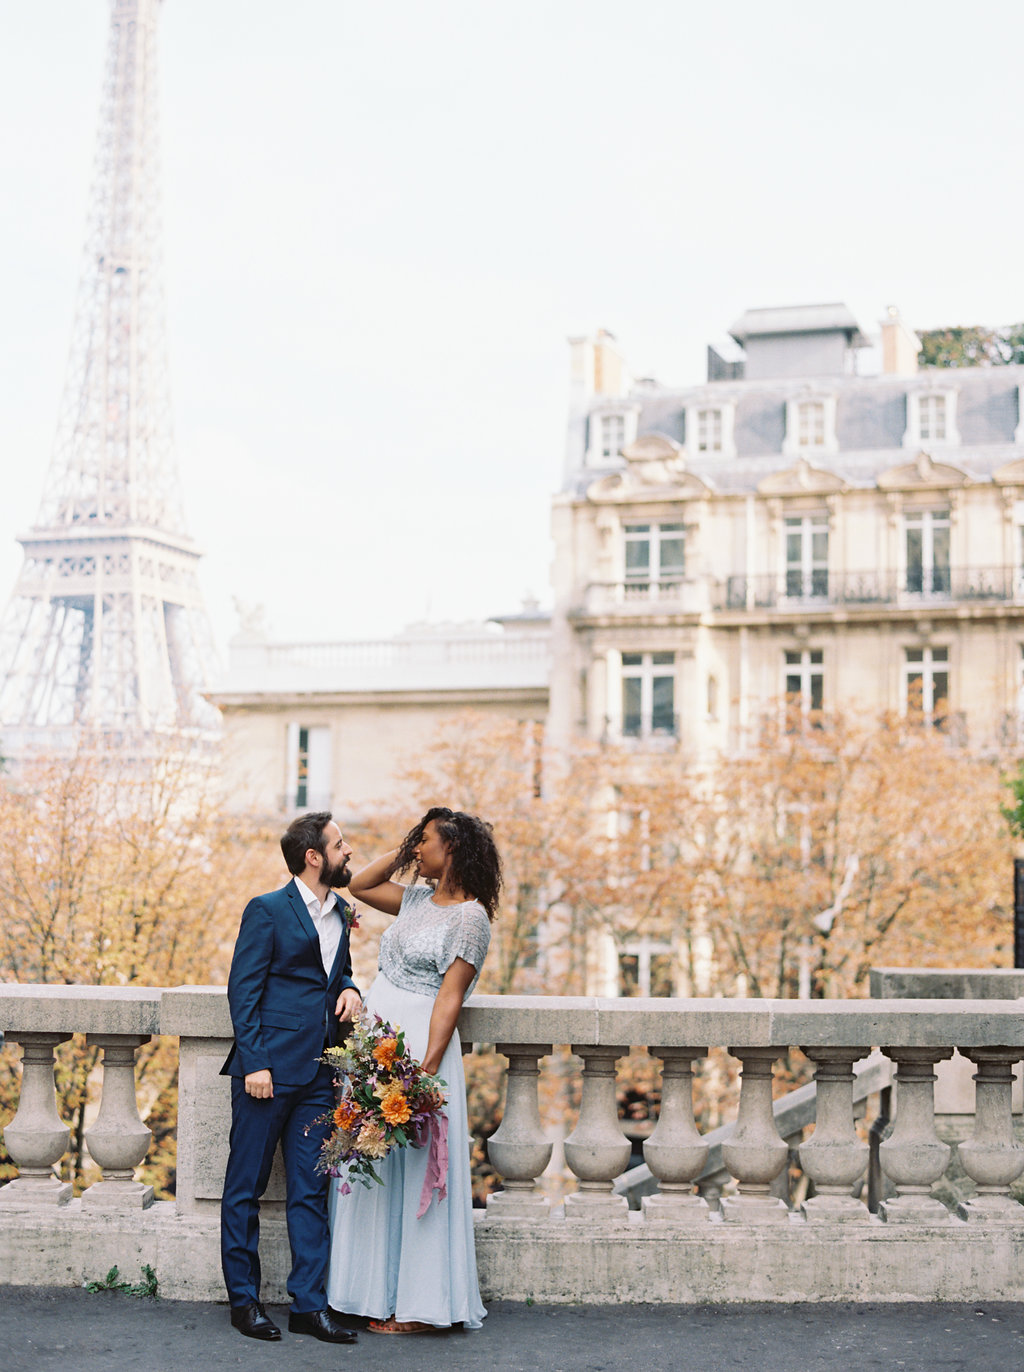 Paris Elopement in front of the Eiffel Tower // Lush, untamed wedding floral design